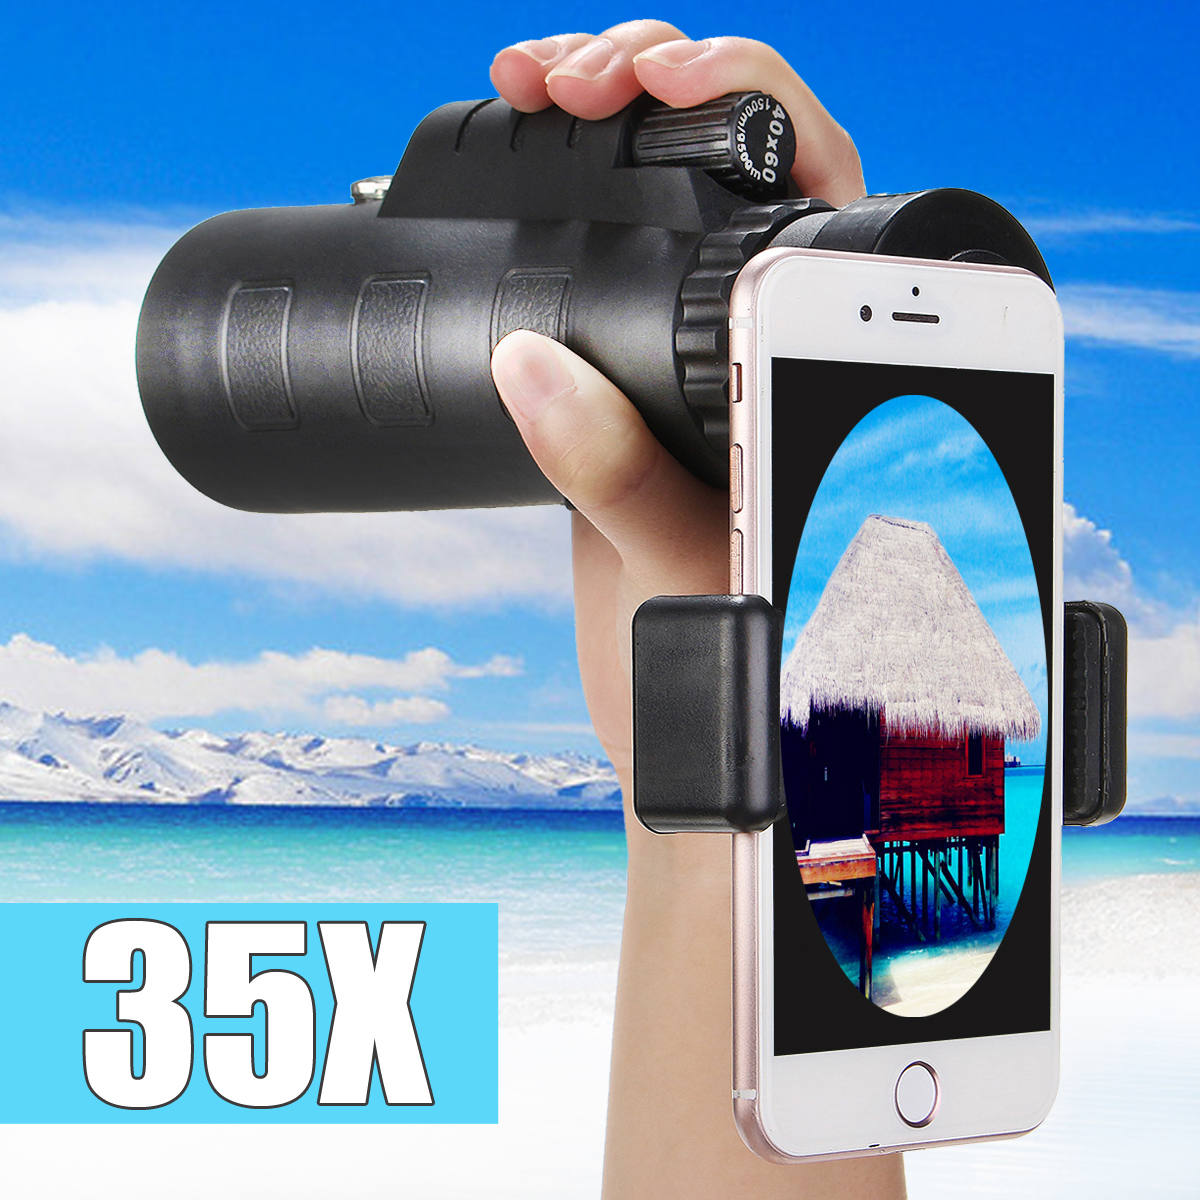 35x50 Telephoto Telescope Monocular Camera Lens + Phone Holder For Universal Smart Mobile Phones